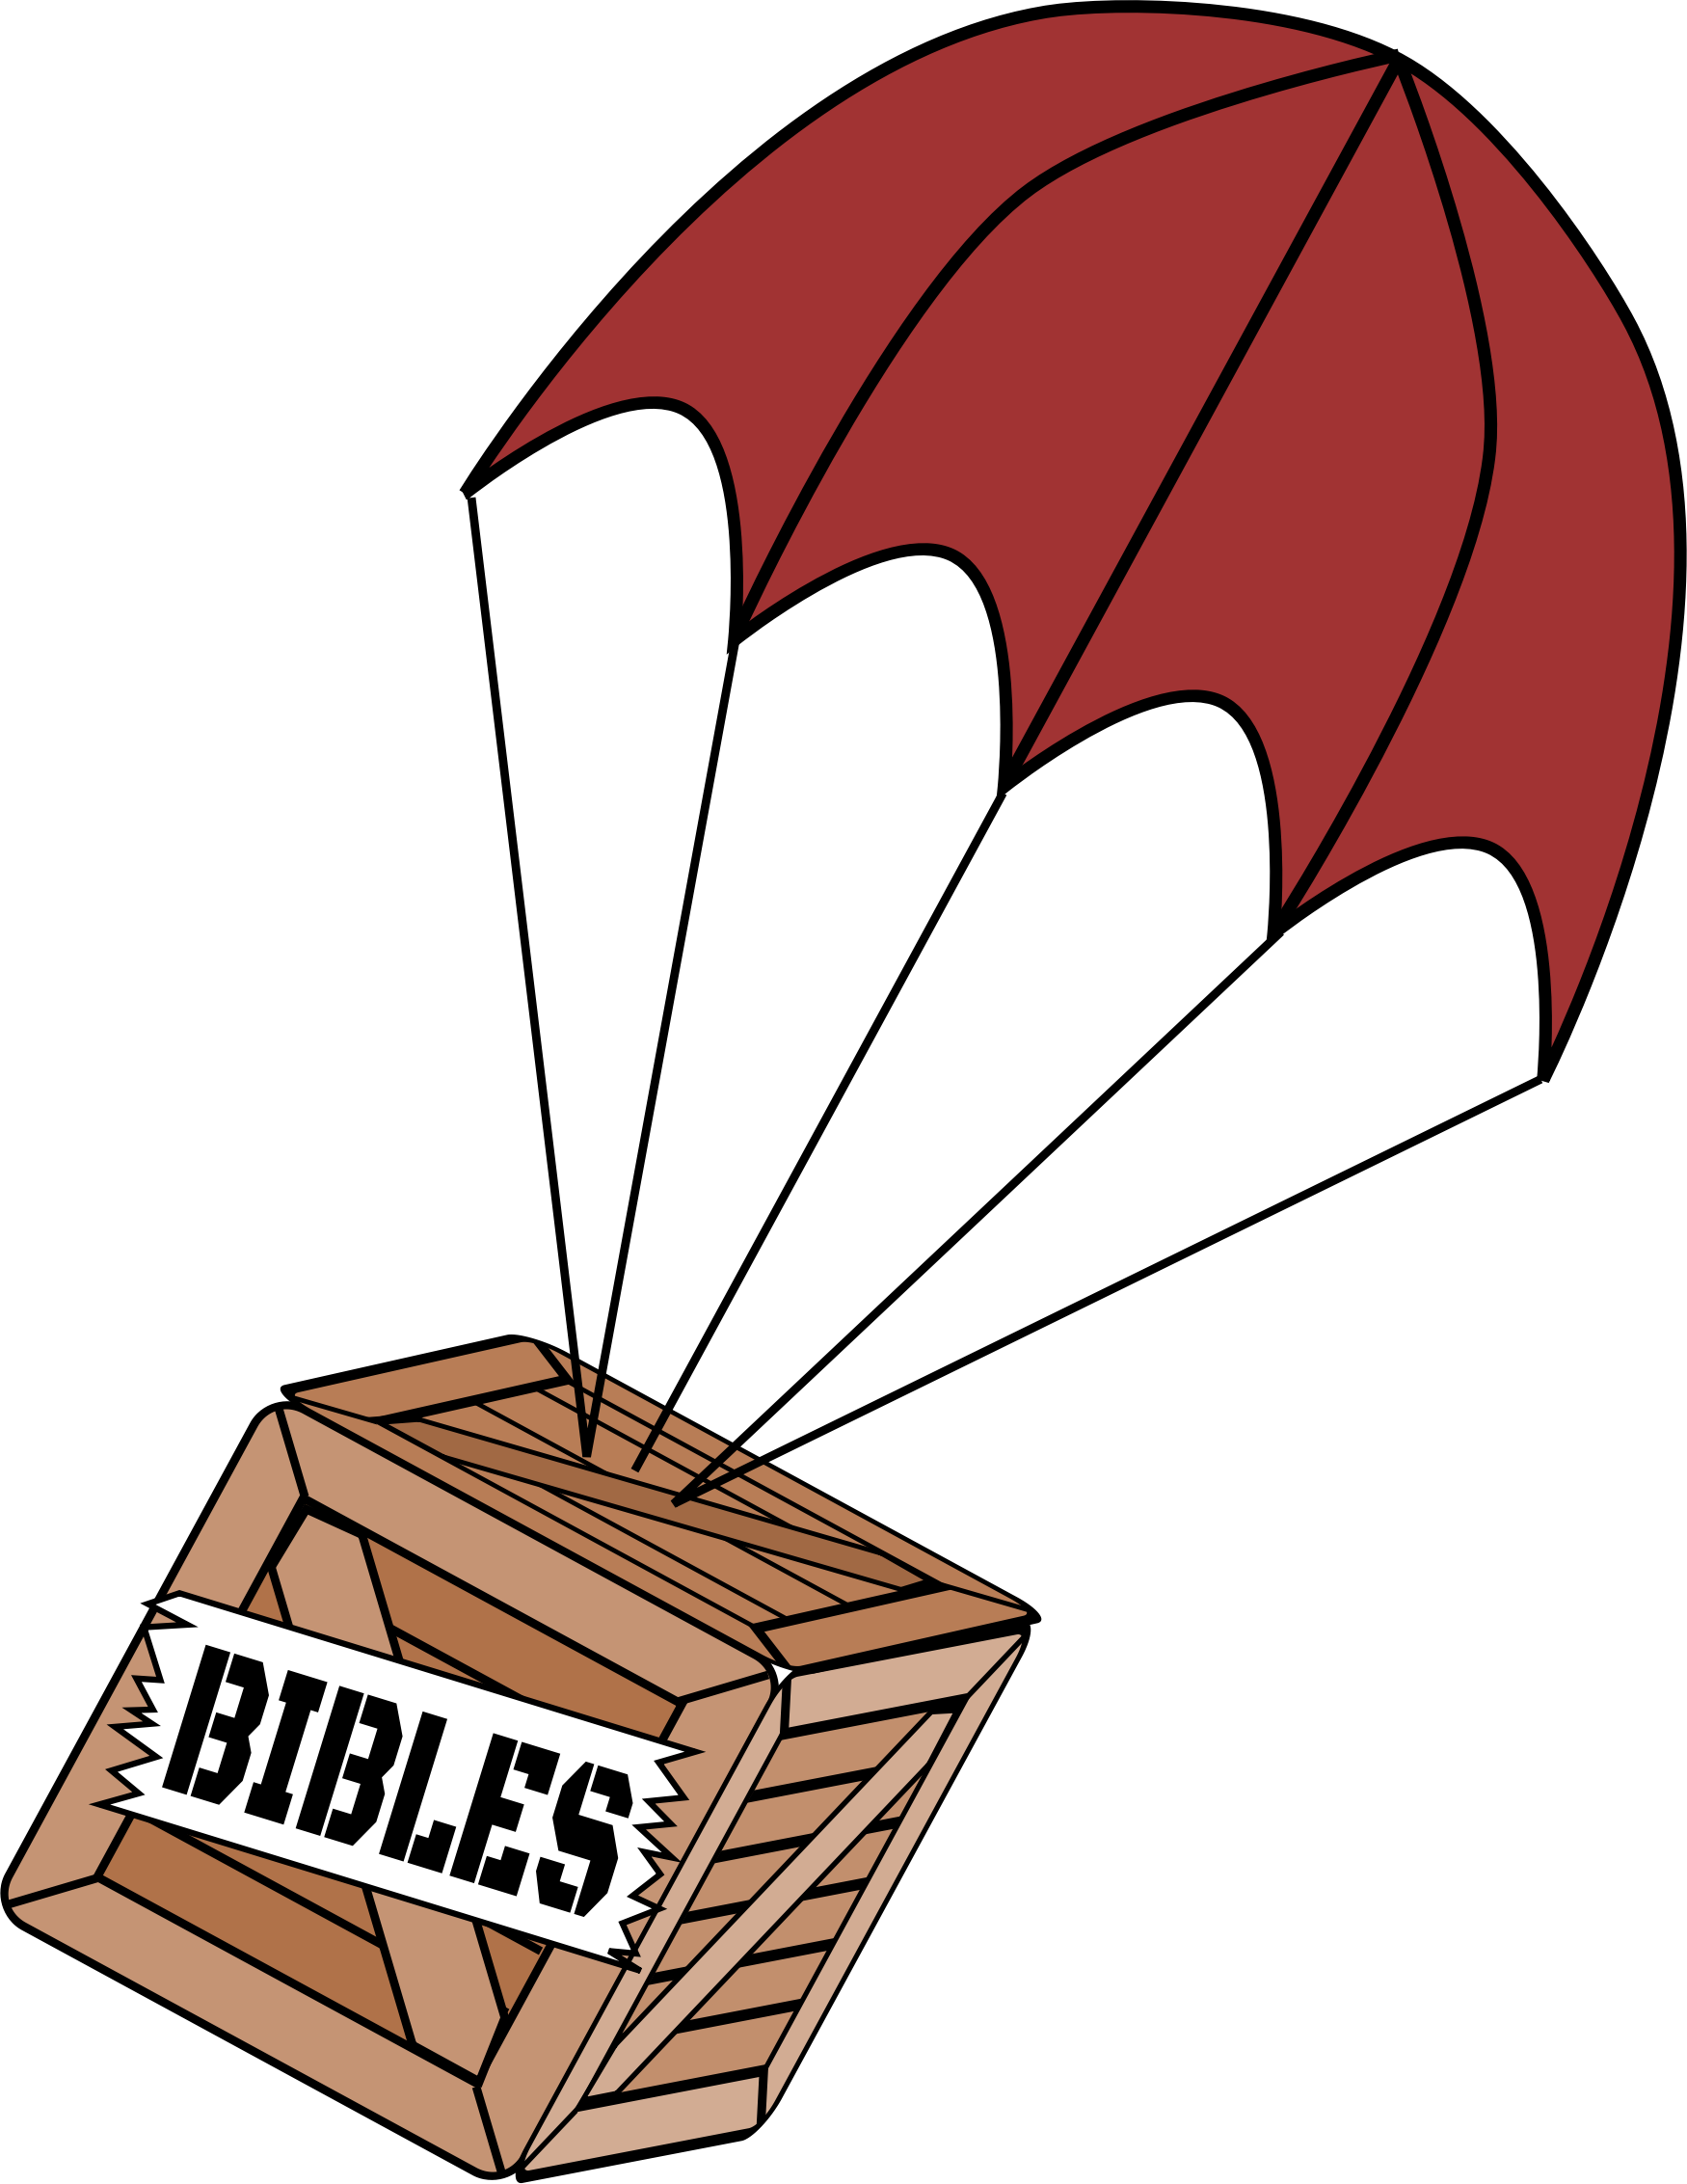 Parachute on Box of Bibles Improved by Arvin61r58